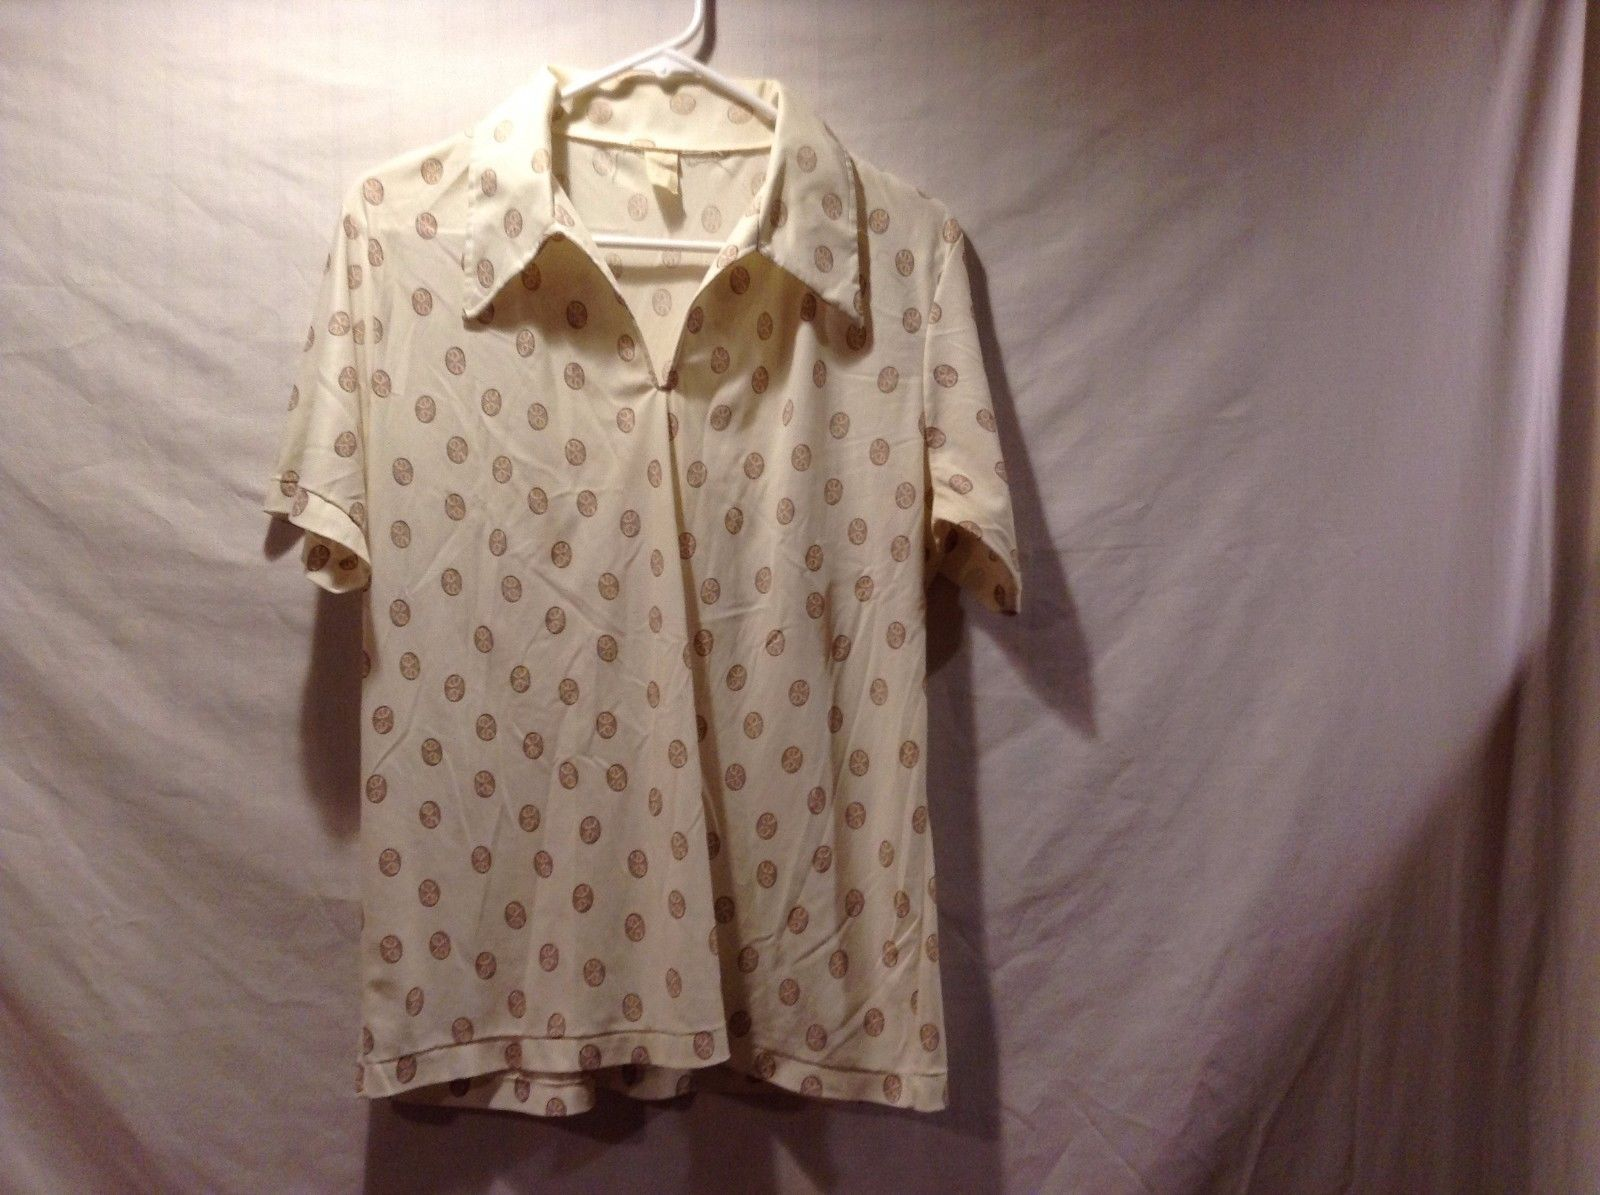 V Neck Light Weight Collared Short Sleeve Polka Dot Shirt Sz 40